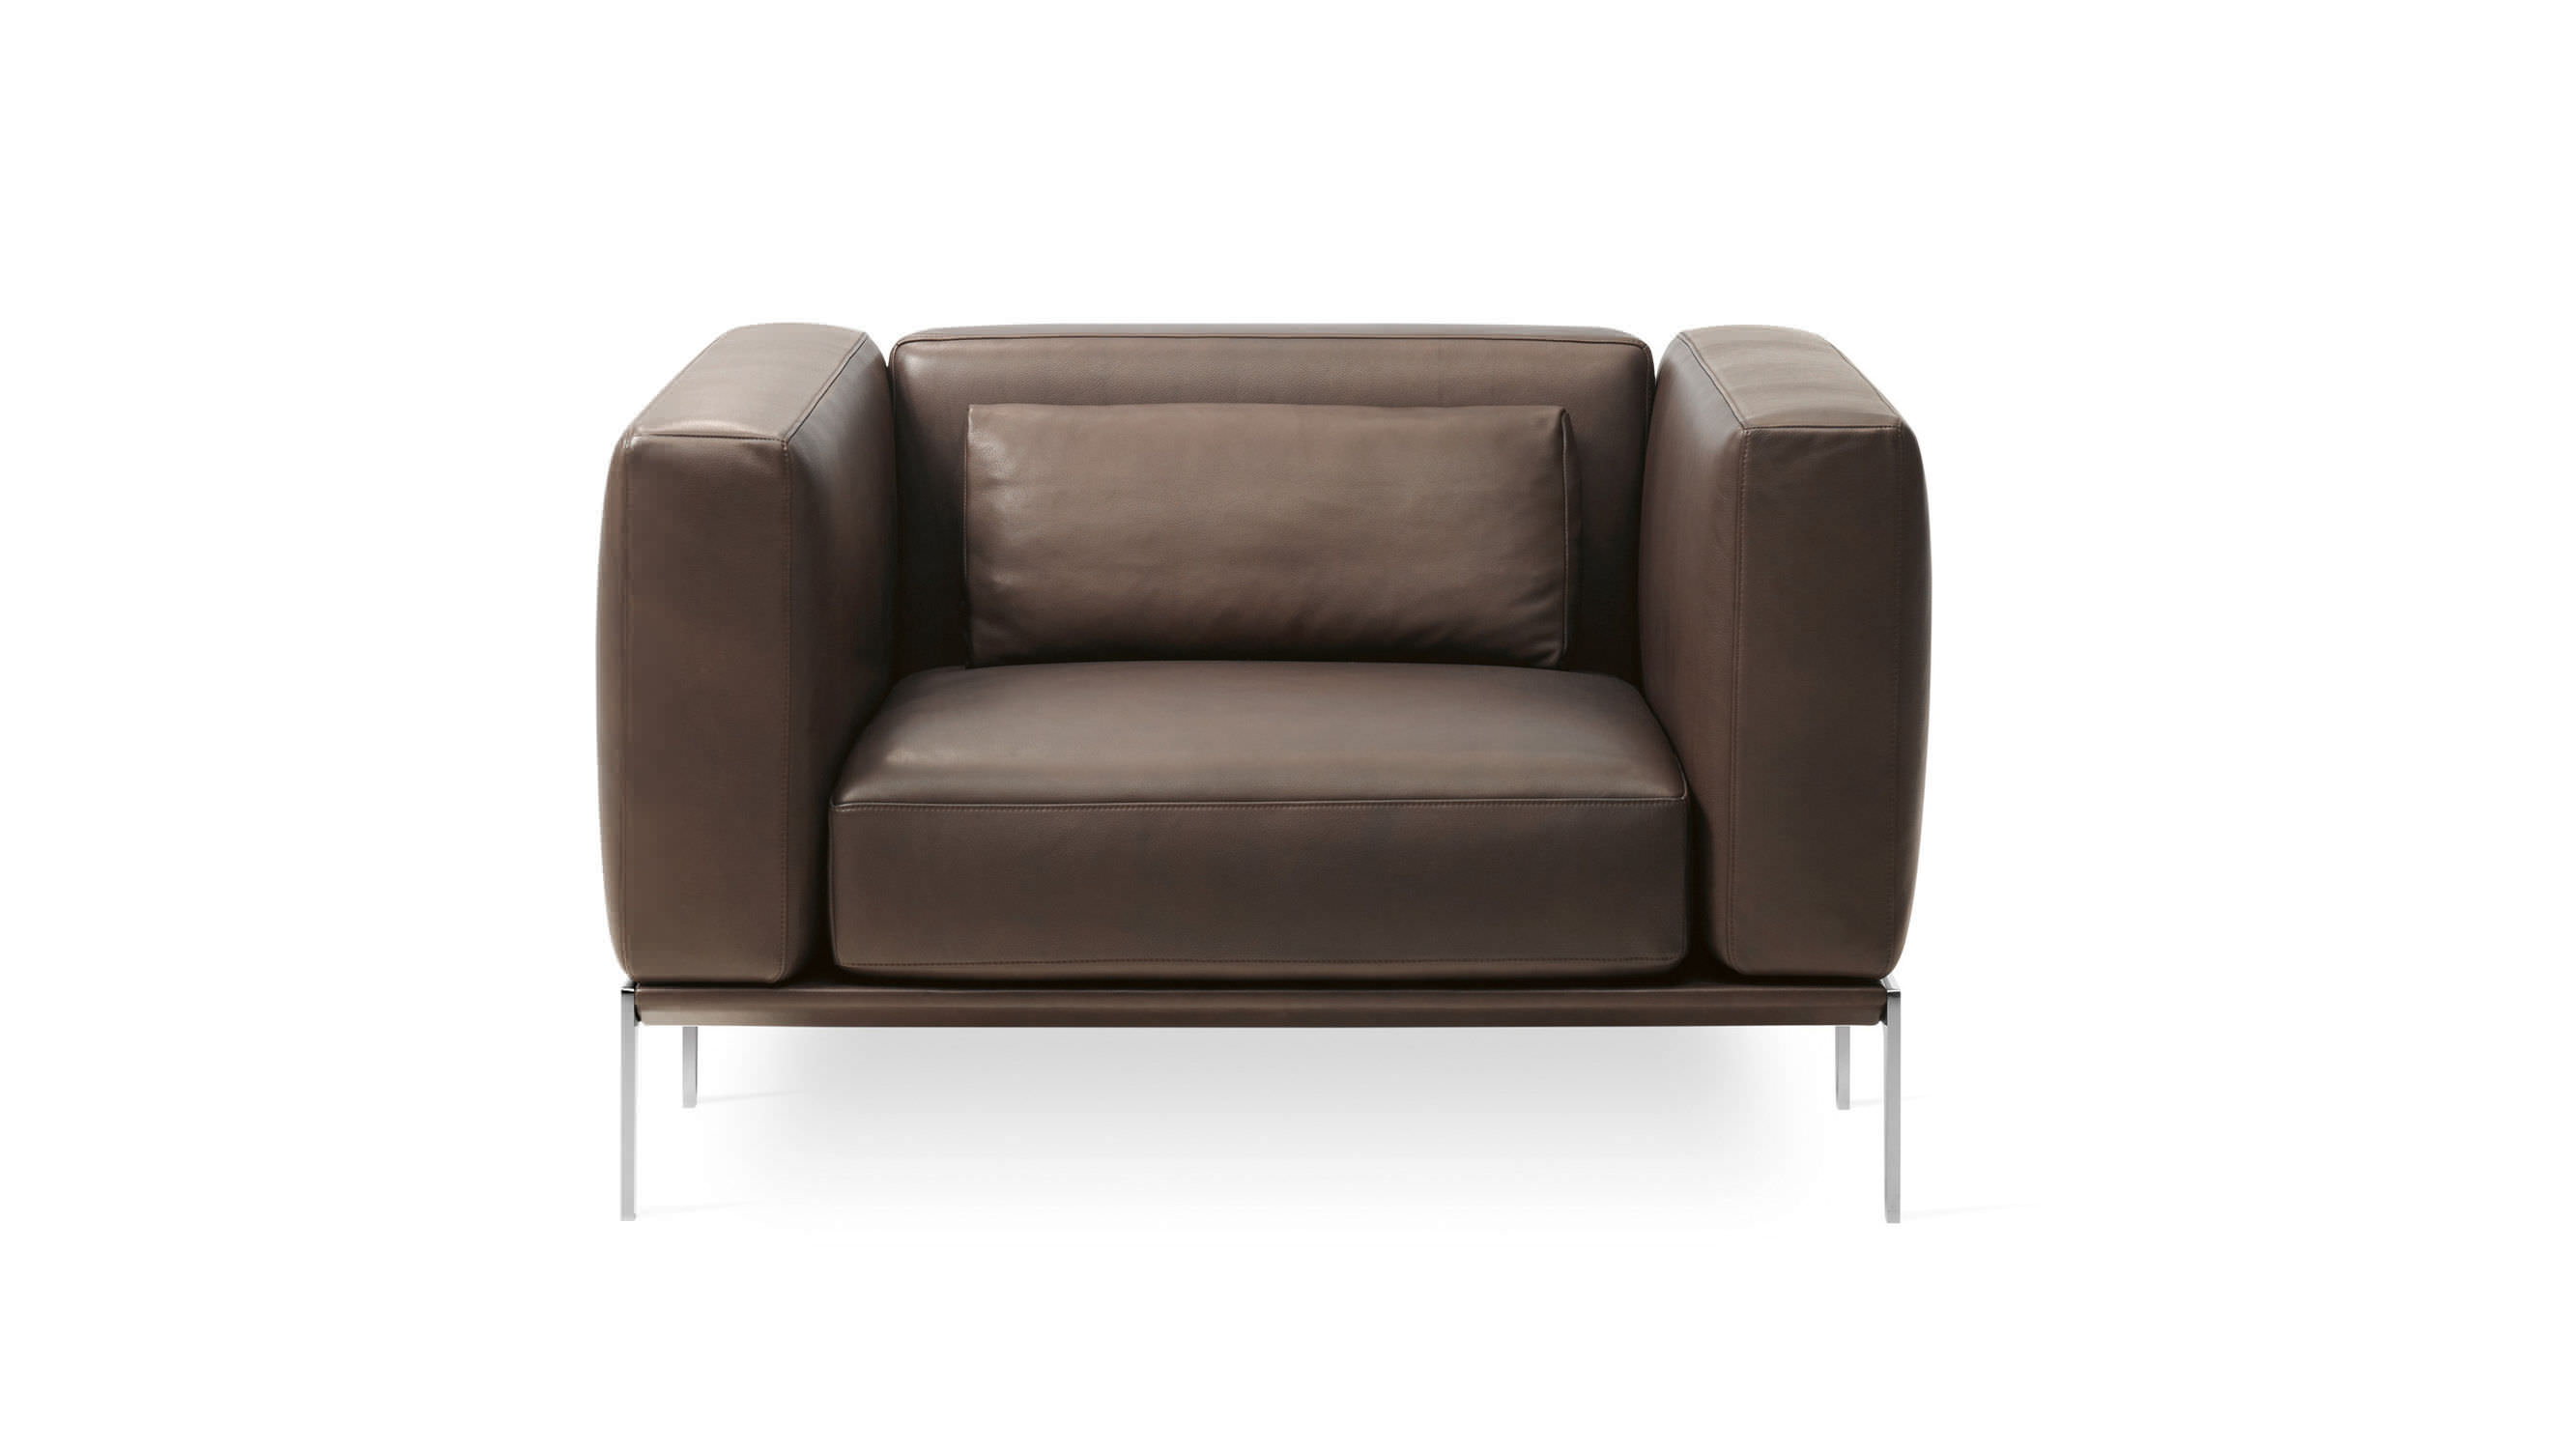 ... Contemporary Armchair / Fabric / Leather / Retractable ...